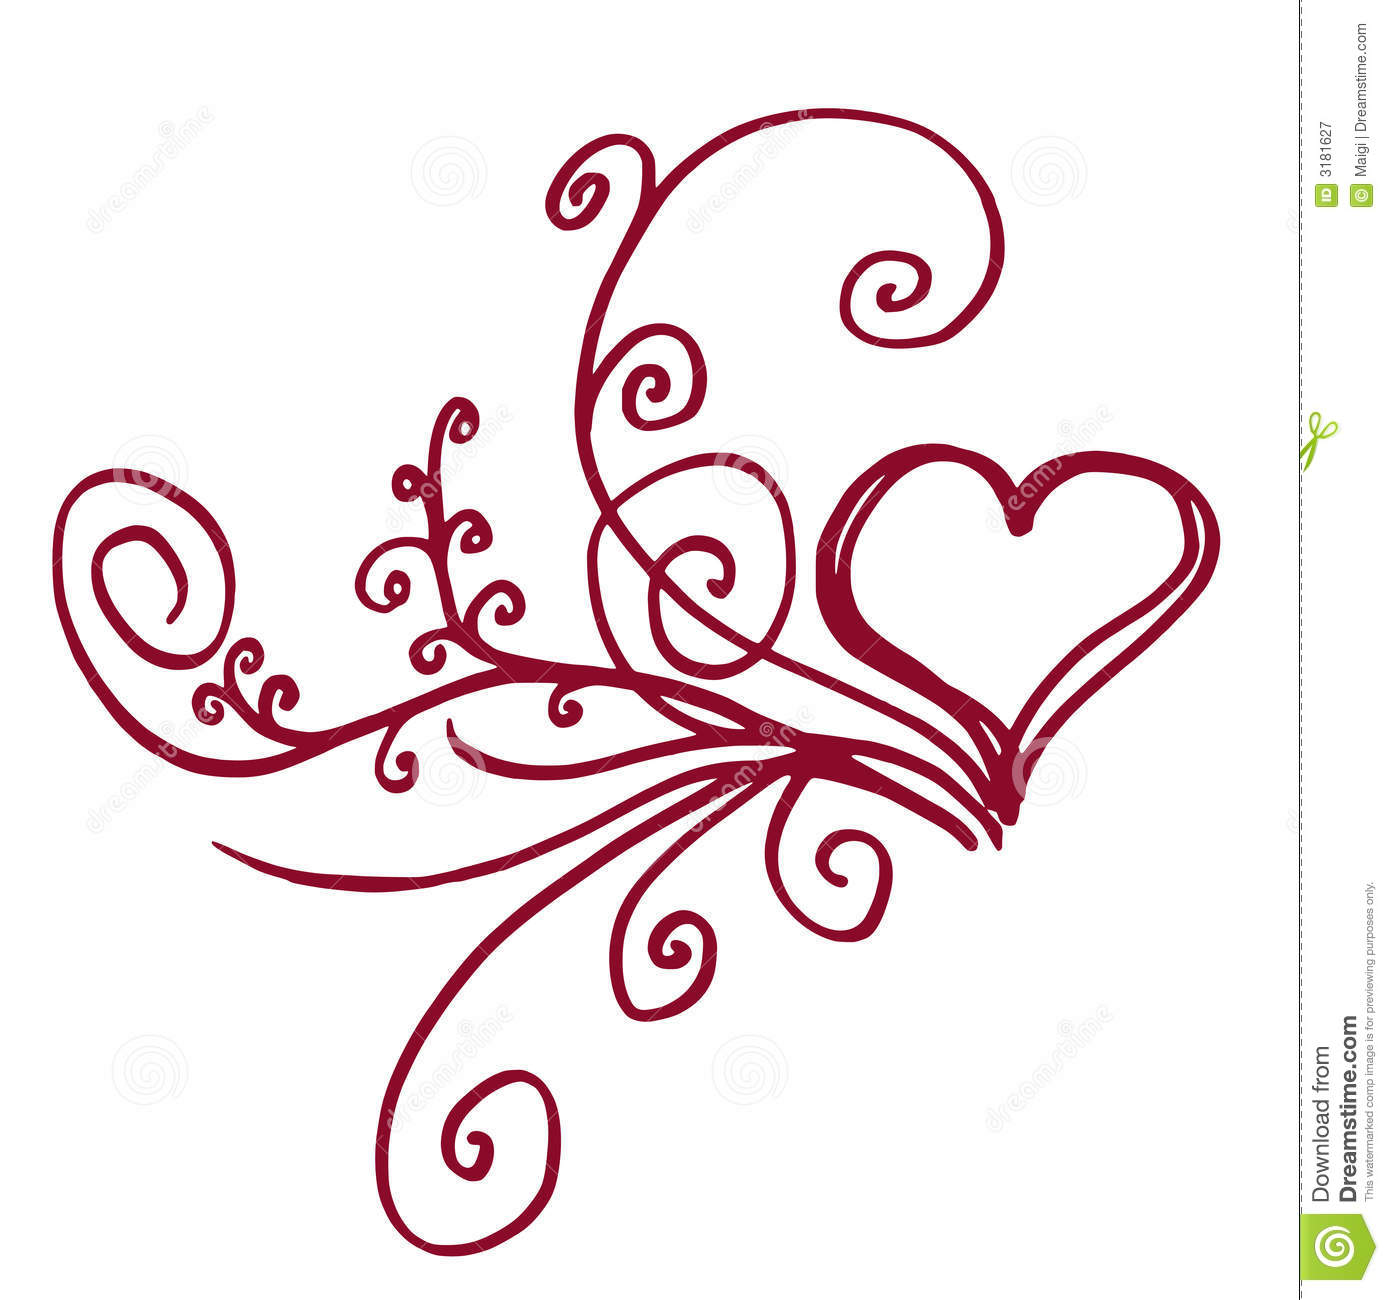 floral heart royalty free stock photography image 3181627 Free Business Card Graphics Business Card Borders